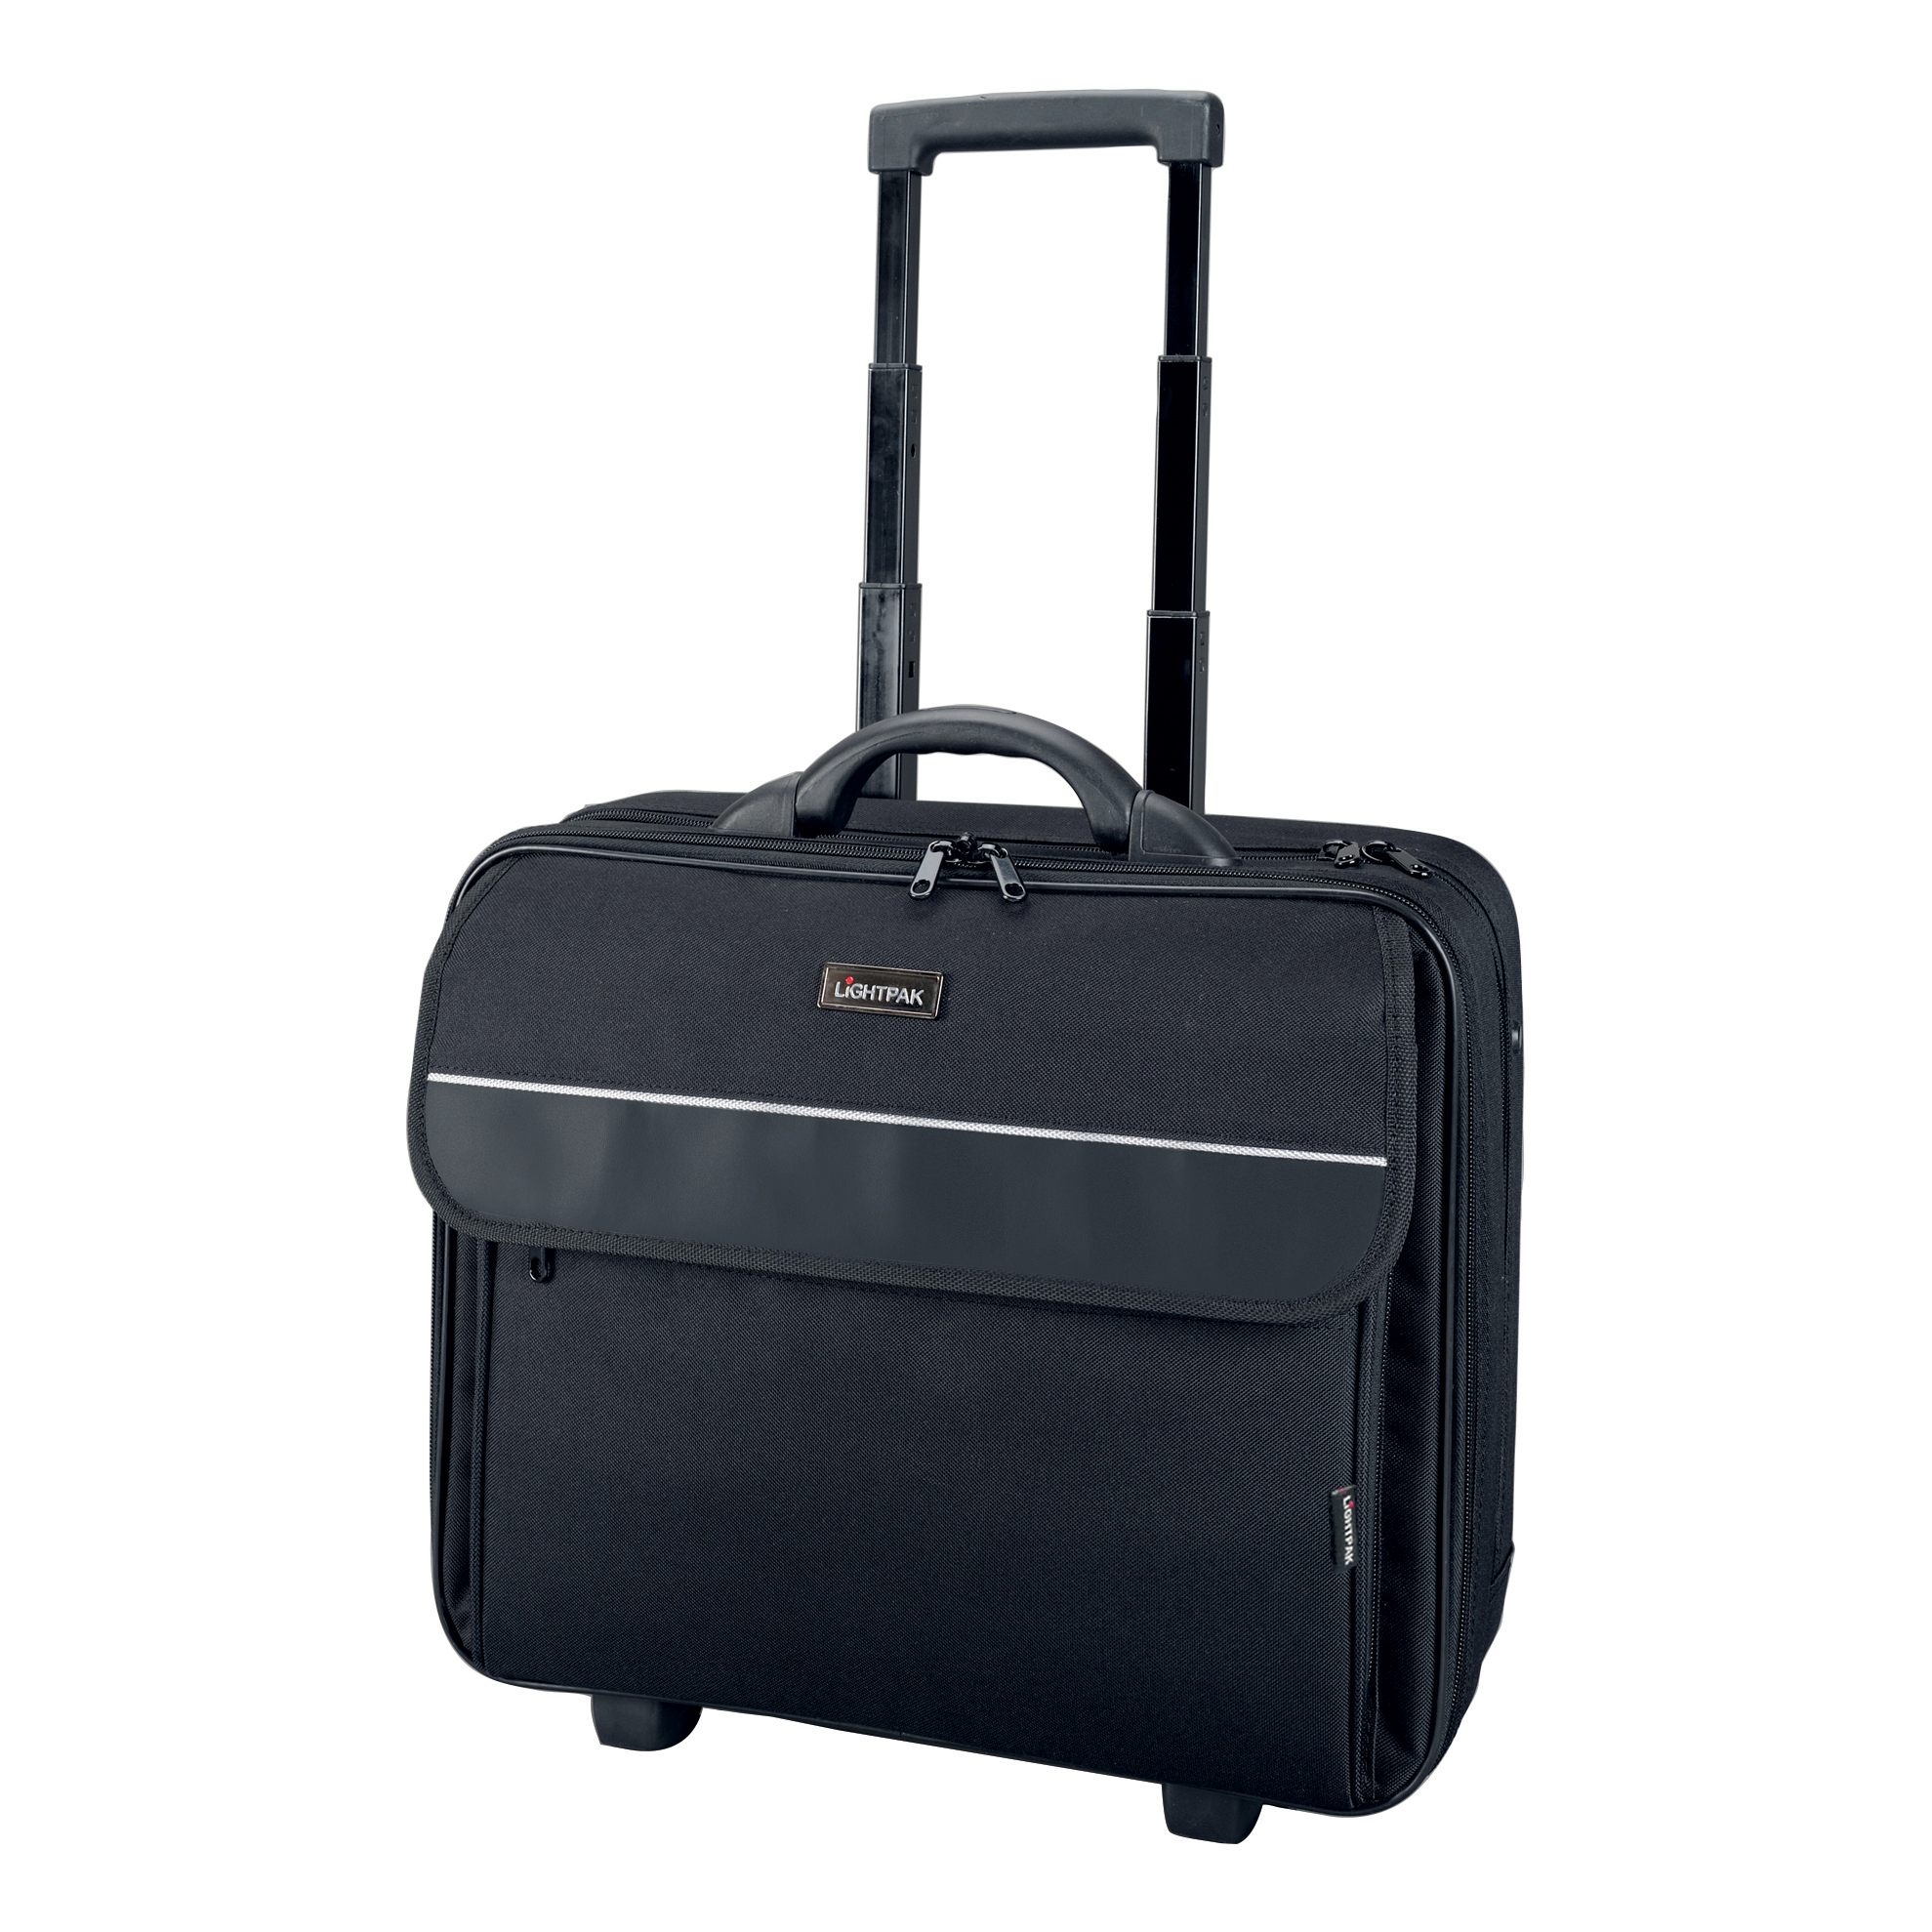 Briefcases & Luggage Lightpak Treviso Laptop Trolley Overnight Nylon Capacity 17in Black Ref 92702